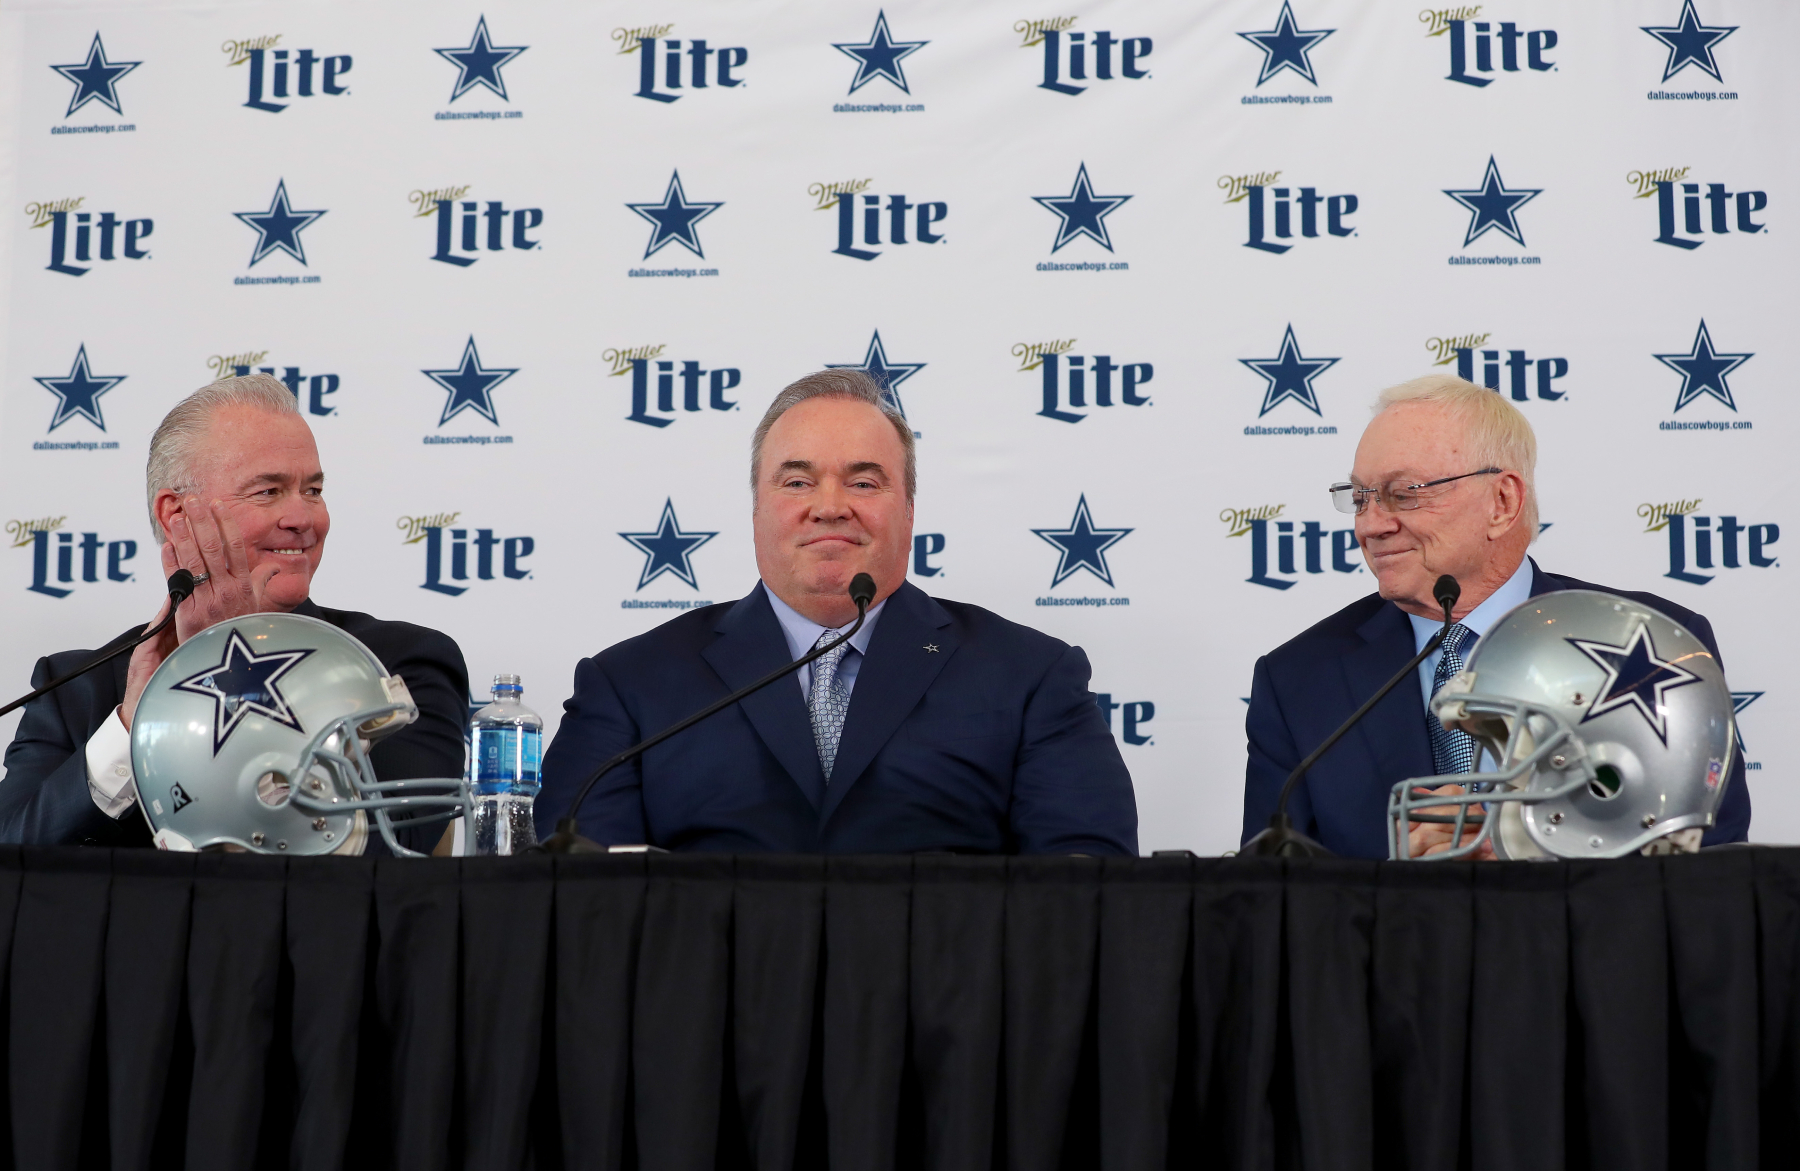 Jerry Jones' Dallas Cowboys team has one massive hole on its roster. Could they end up getting a big upgrade before next season?